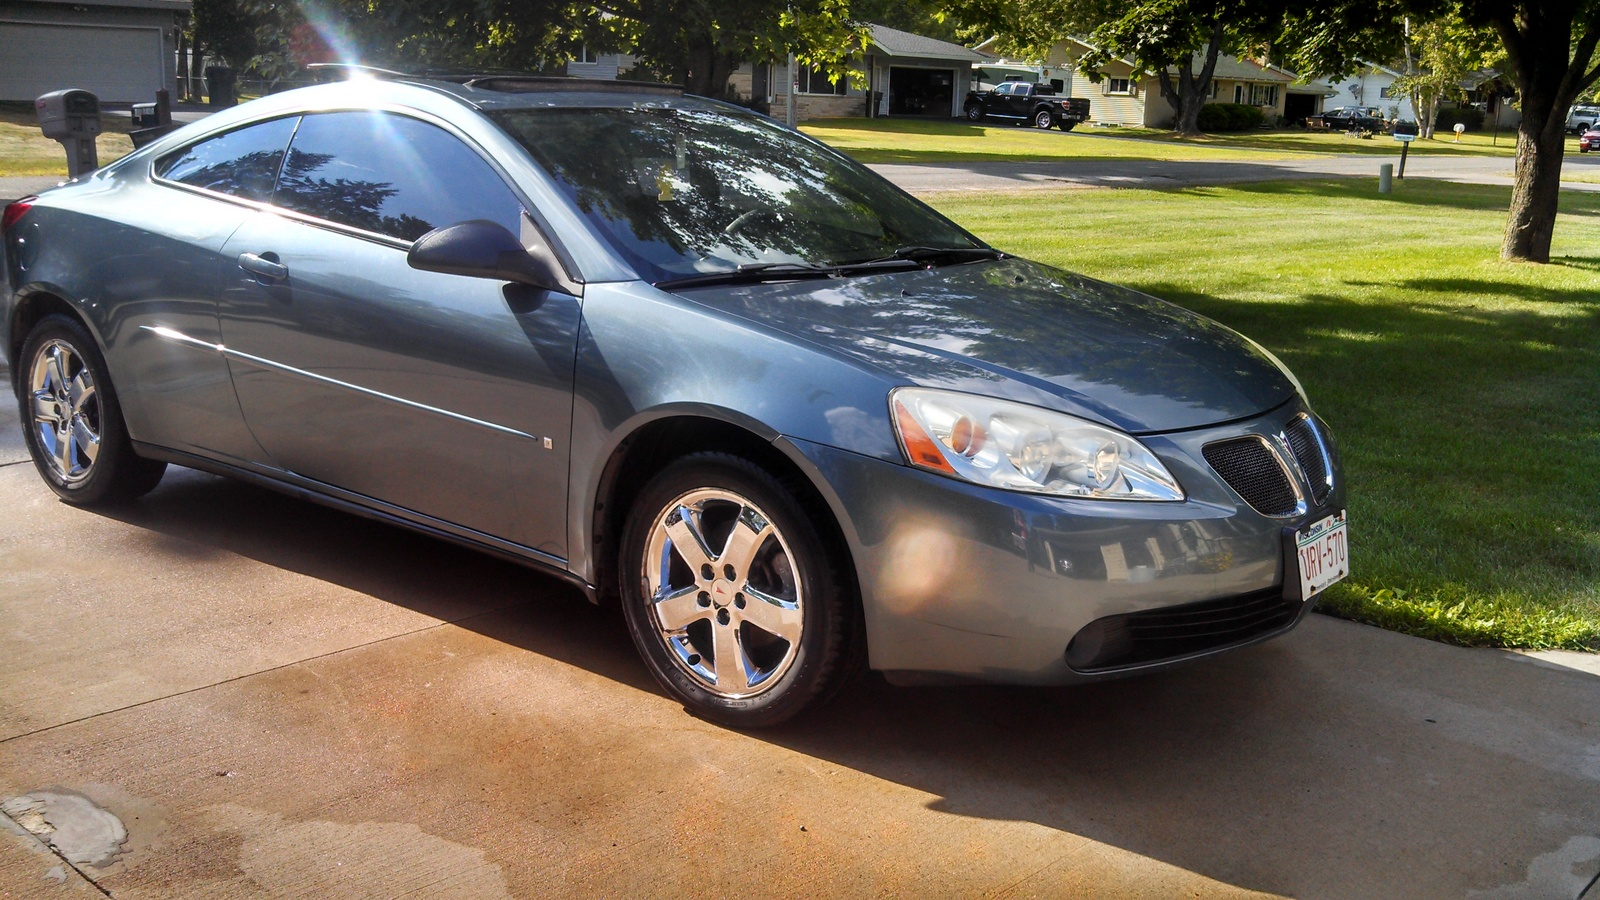 2006 pontiac g6 gt coupe picture exterior. Black Bedroom Furniture Sets. Home Design Ideas